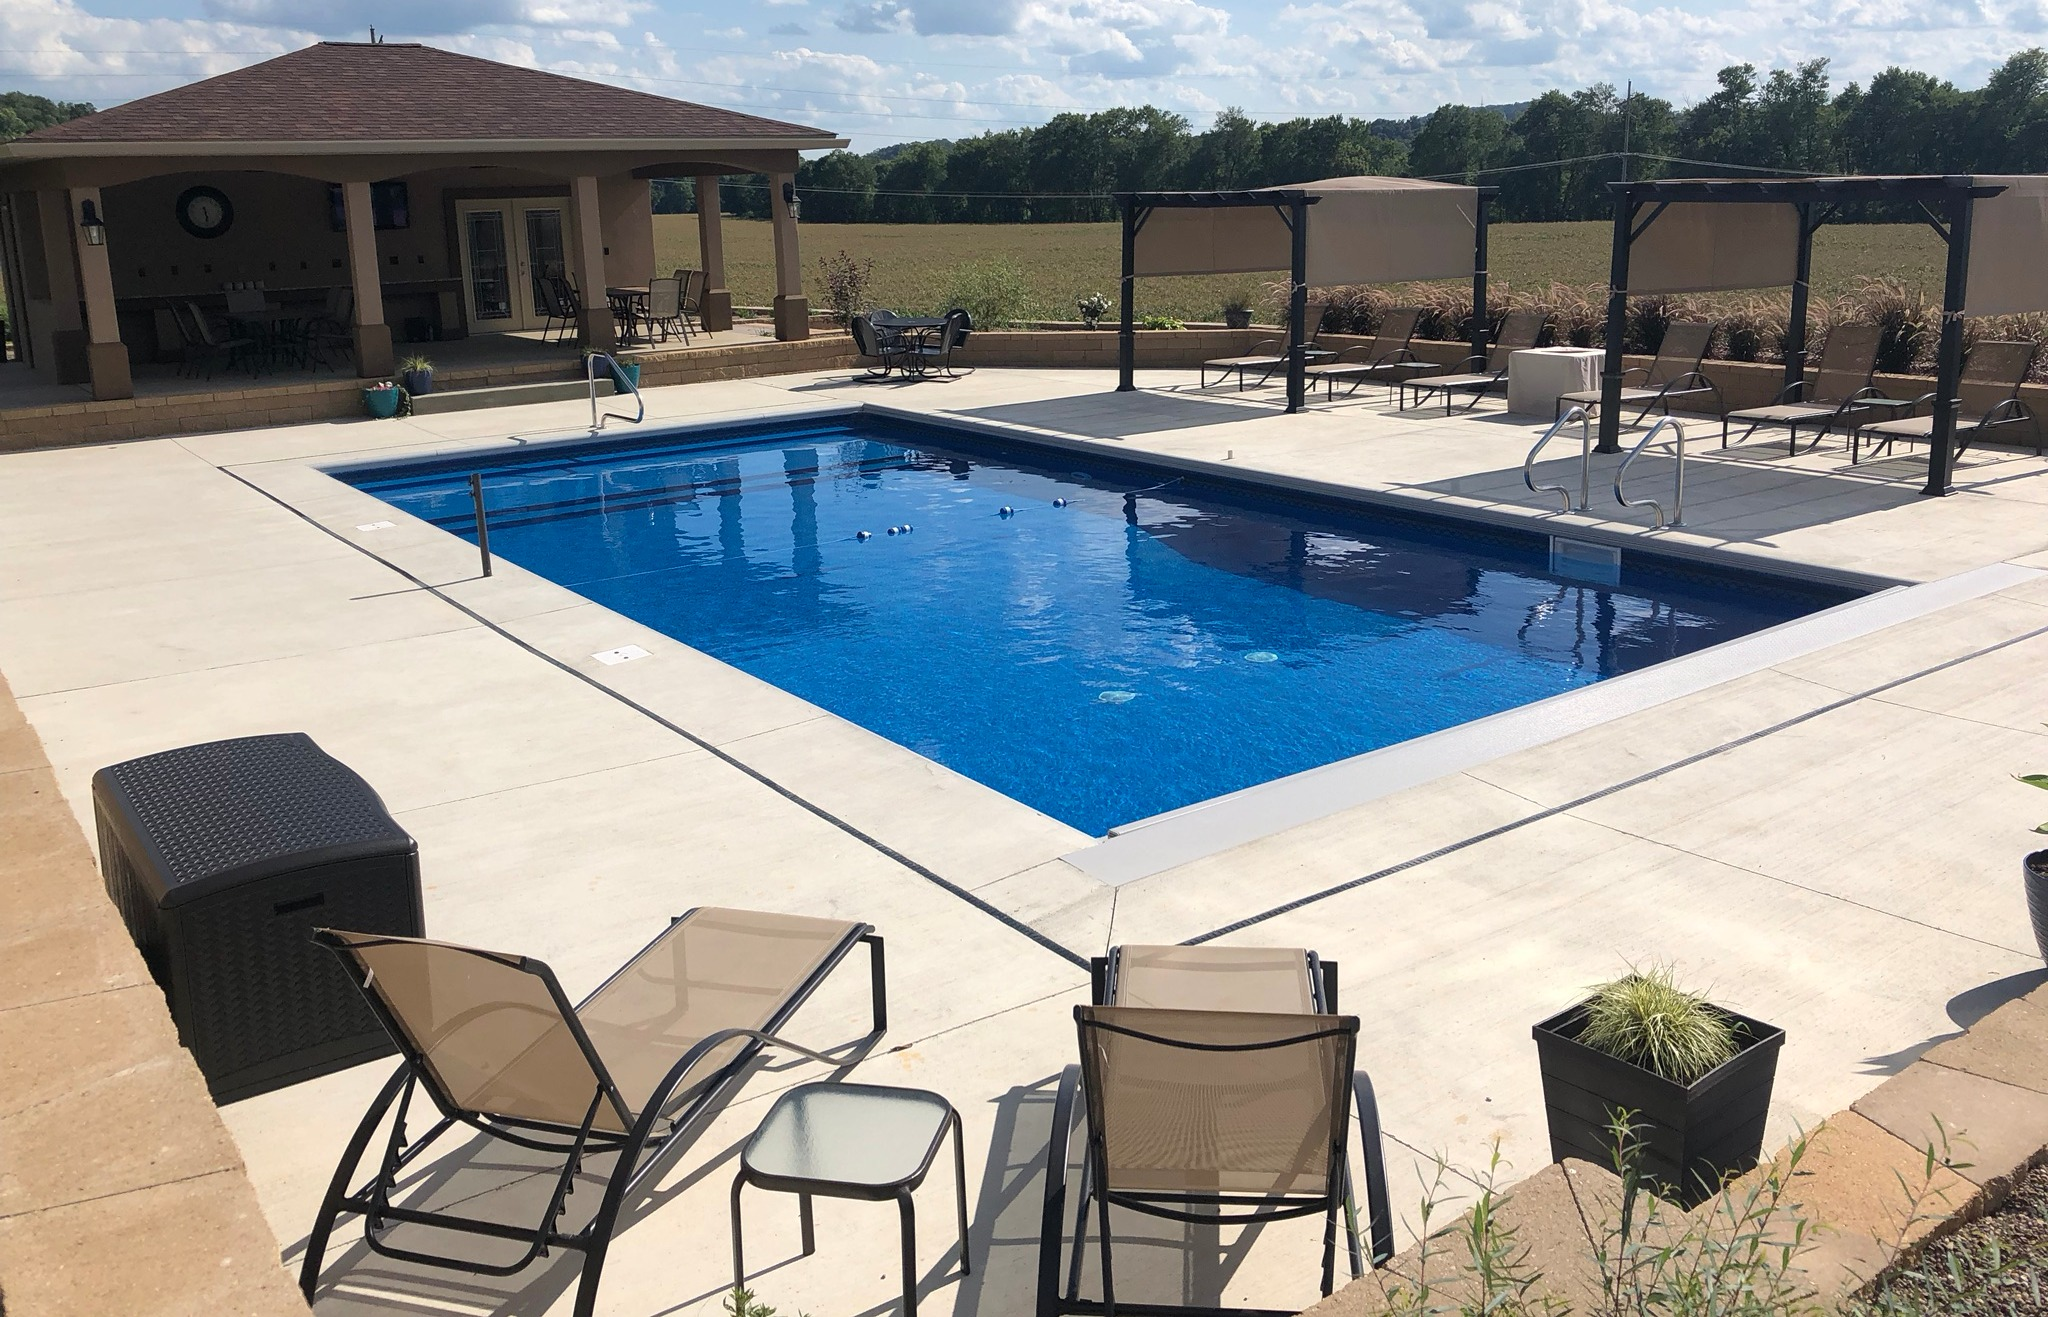 How Much Decking or Patio Do I Need Around an Inground ... on Pool Deck Patio Ideas id=13390